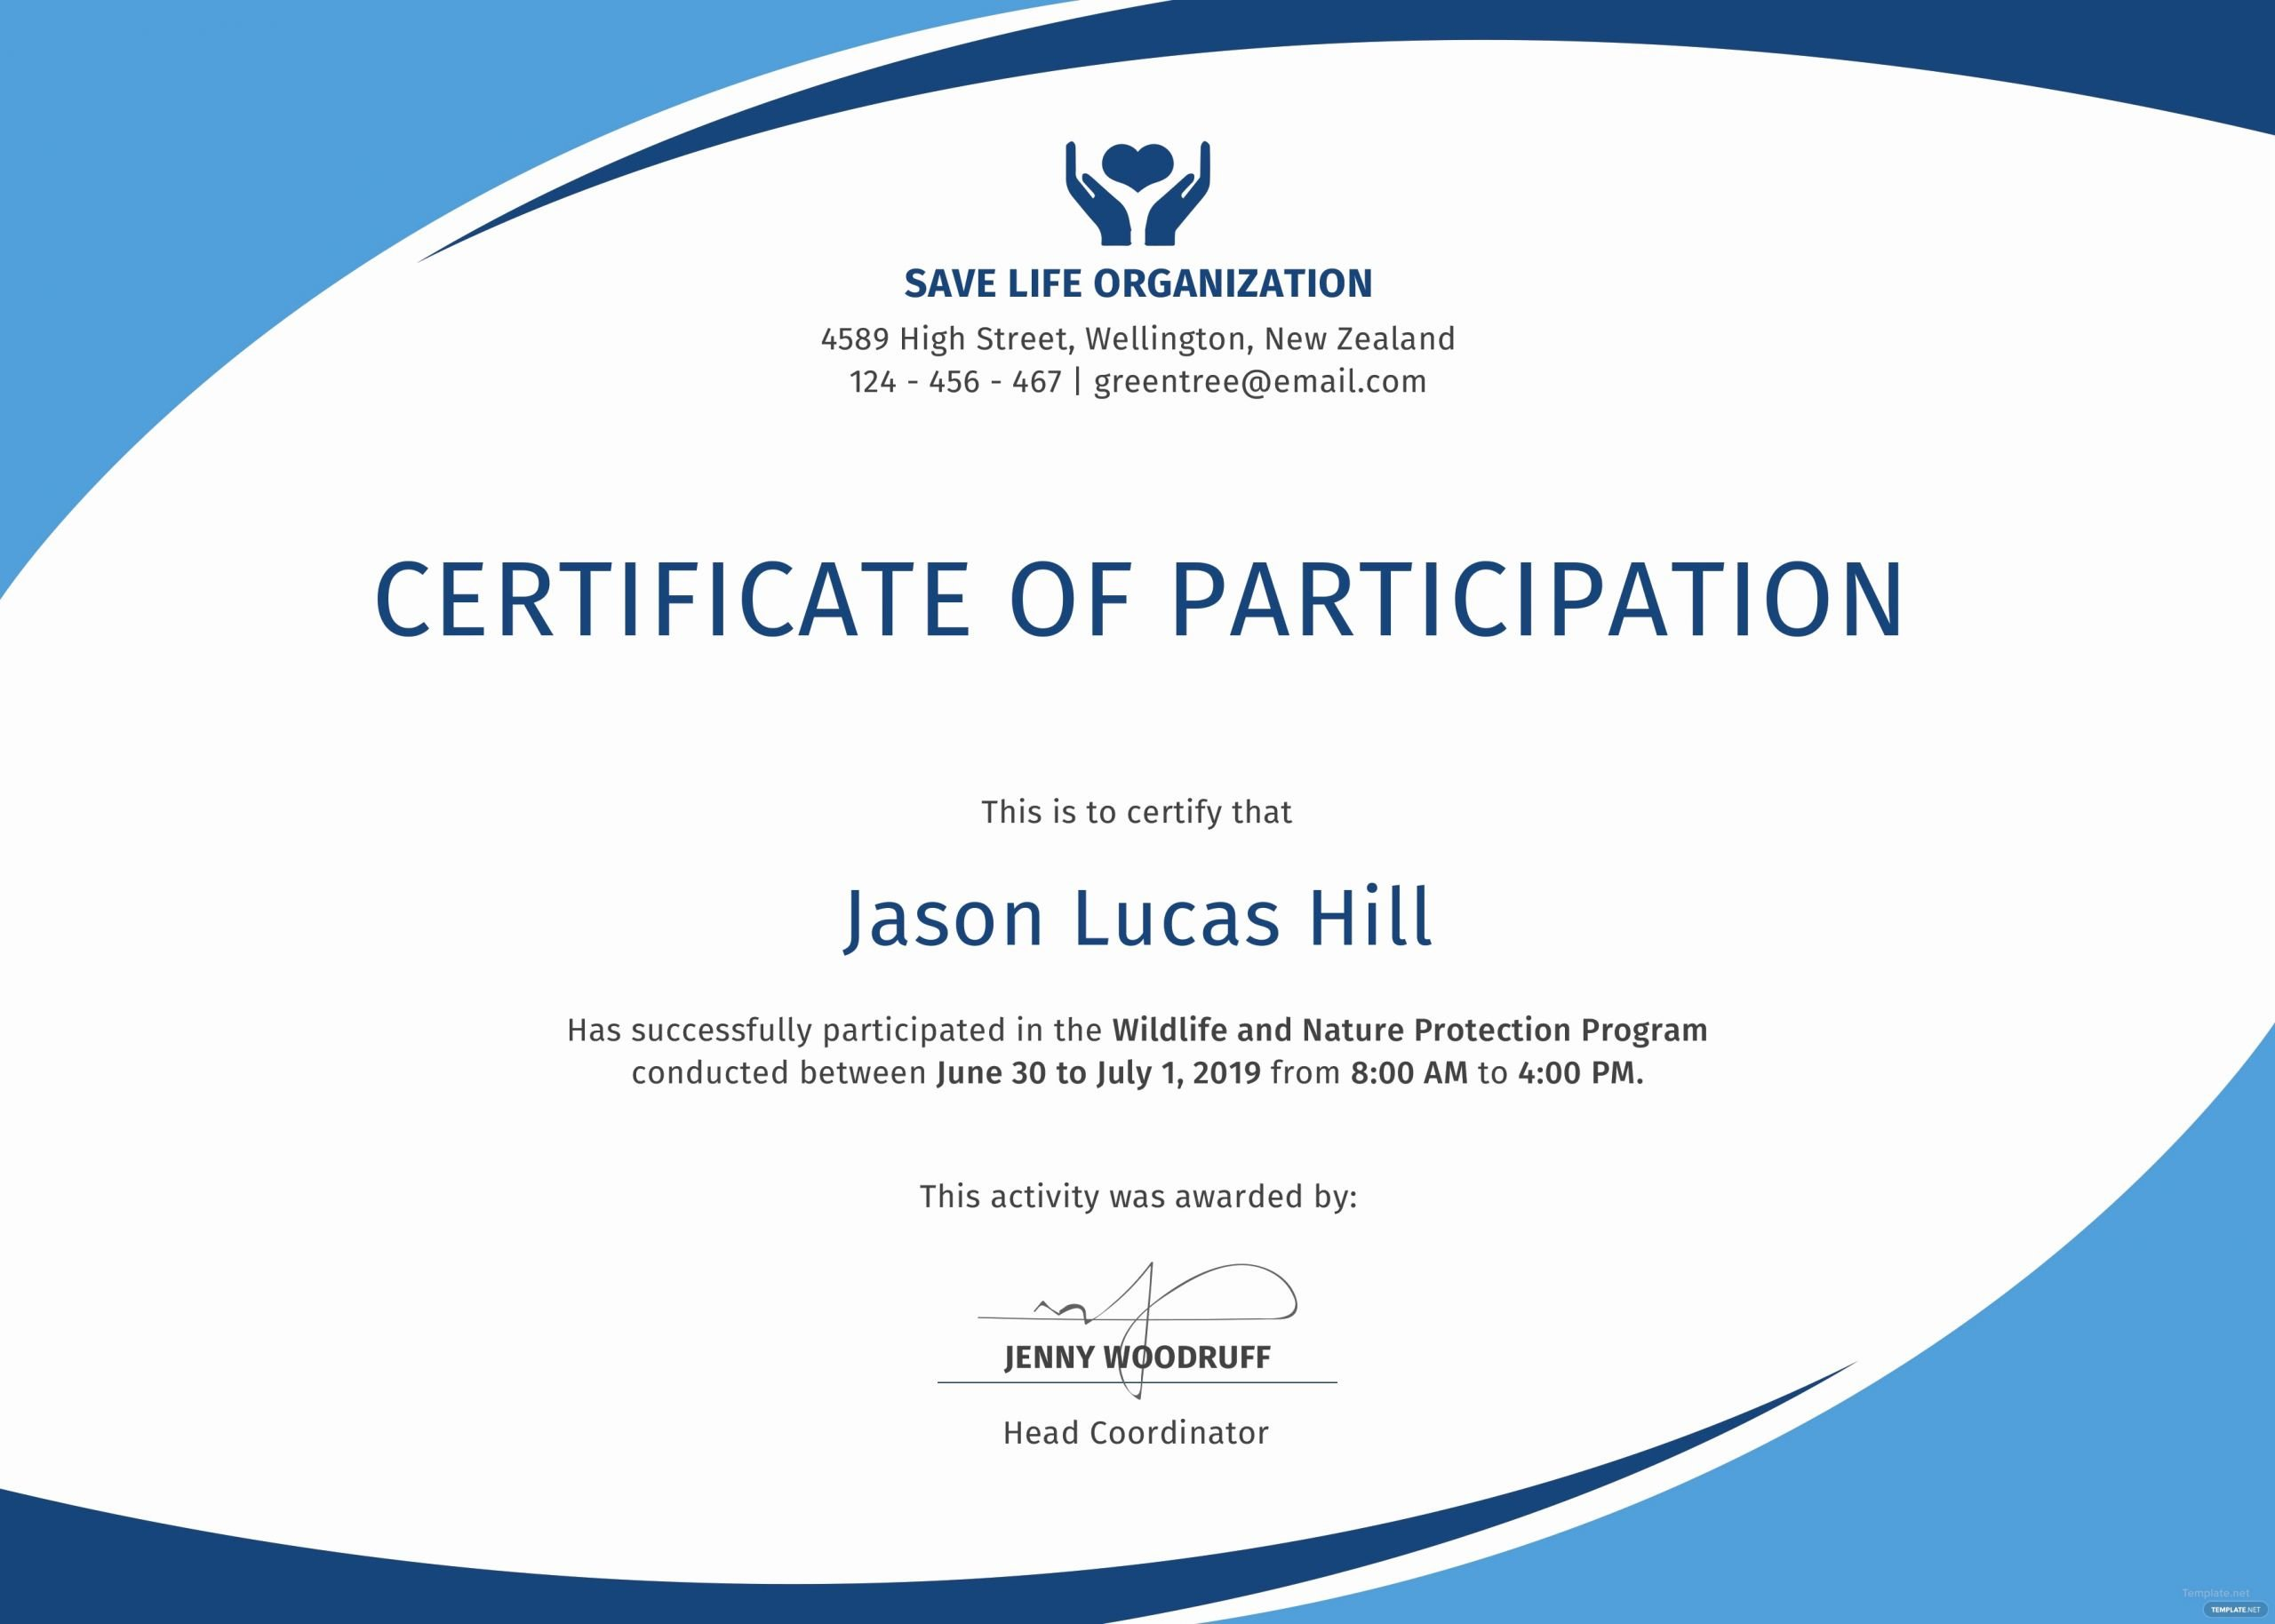 Certificate Of Participation Sample Best Of Free Program Participation Certificate Template In Psd Ms